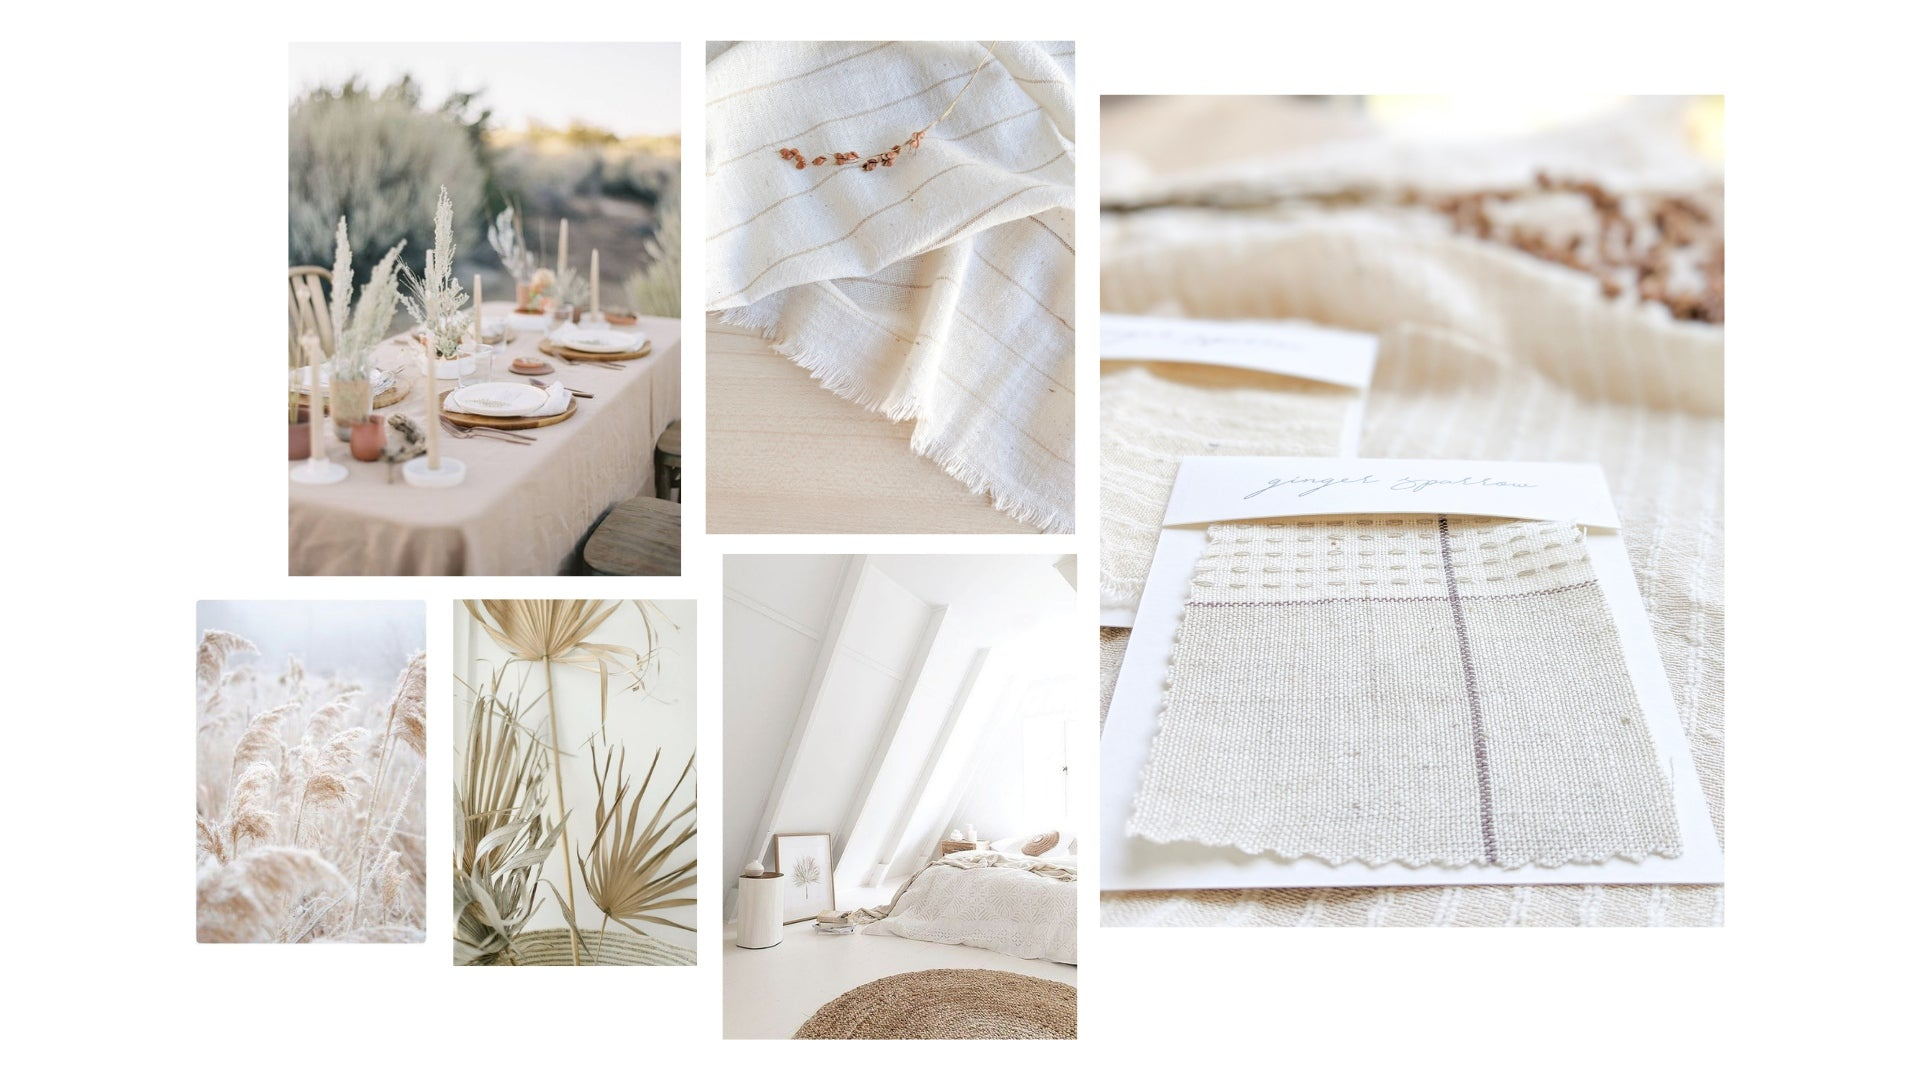 The Flowers of Cotton Collection by Ginger Sparrow, a modern, handcrafted, home decor brand.